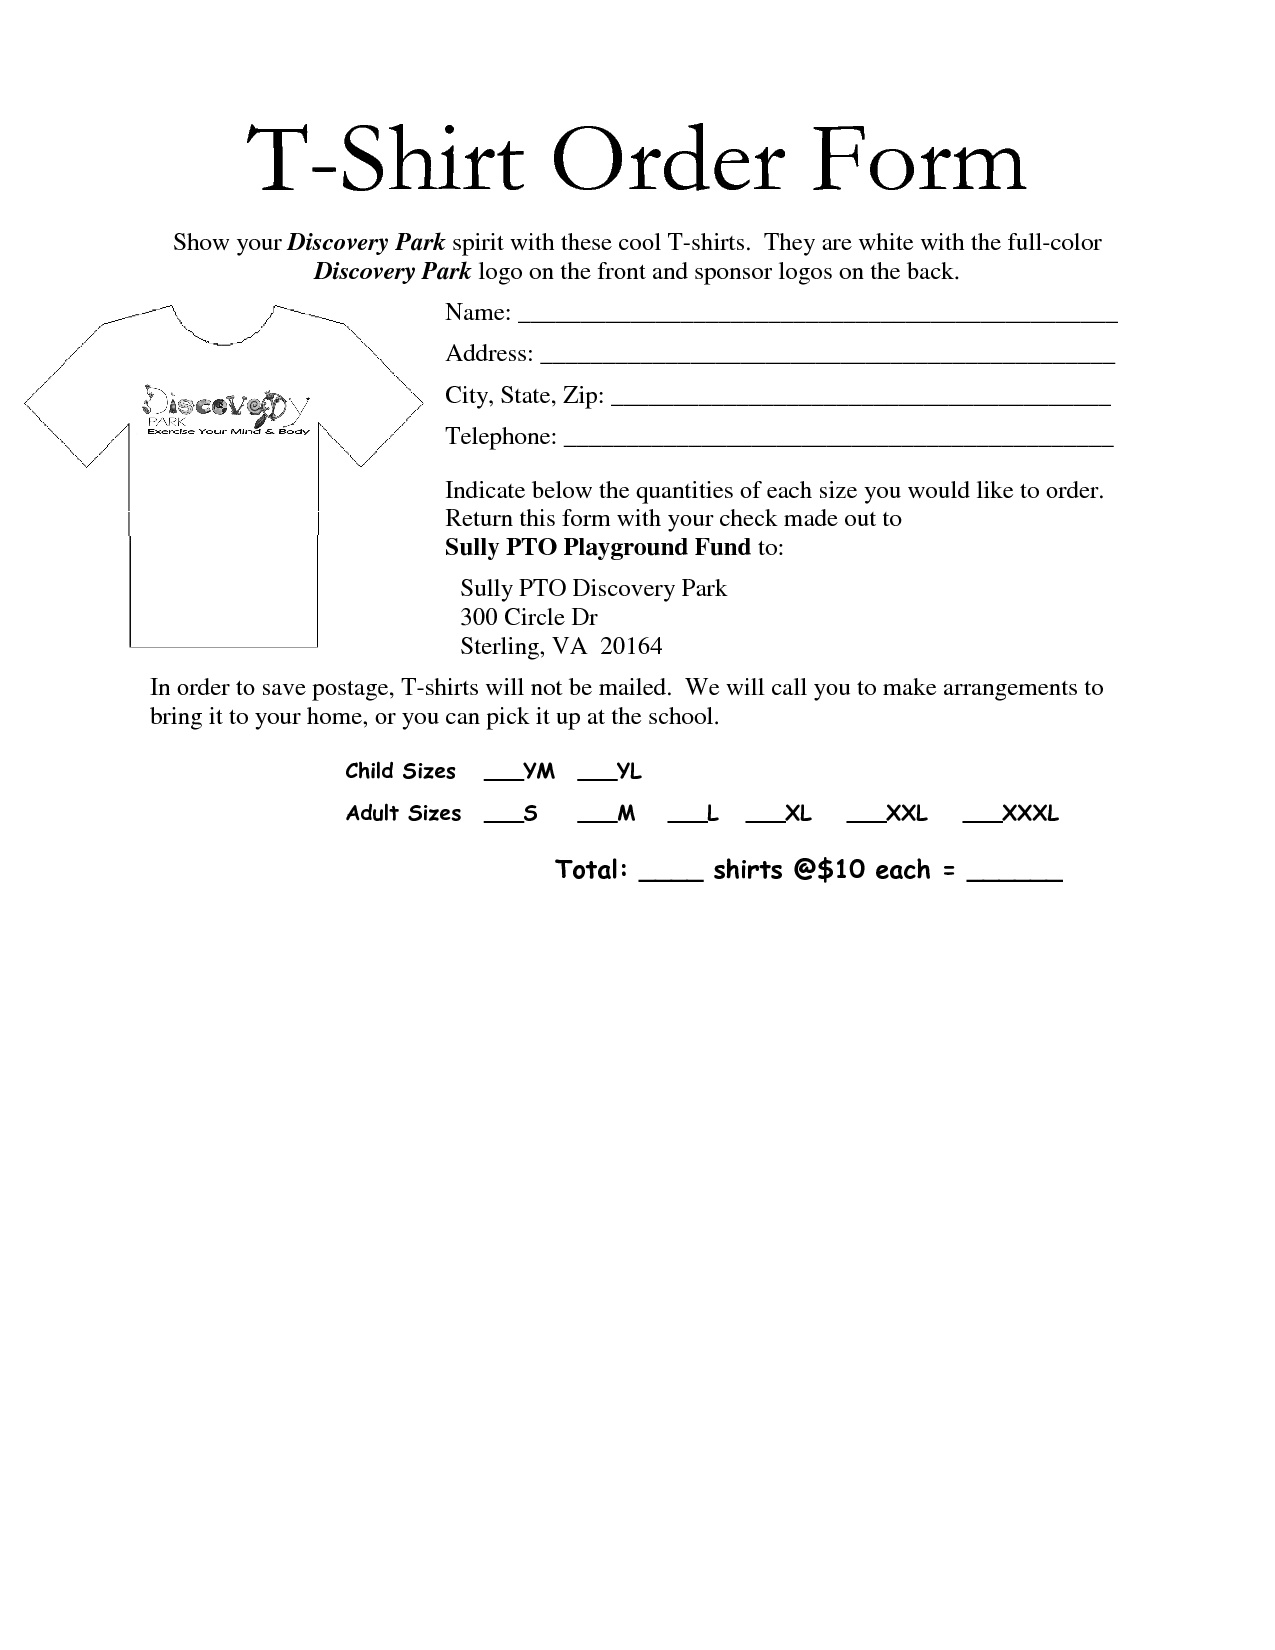 Spreadsheet For T Shirt Orders With Check Request Form Template Excel Elegant 35 Awesome T Shirt Order